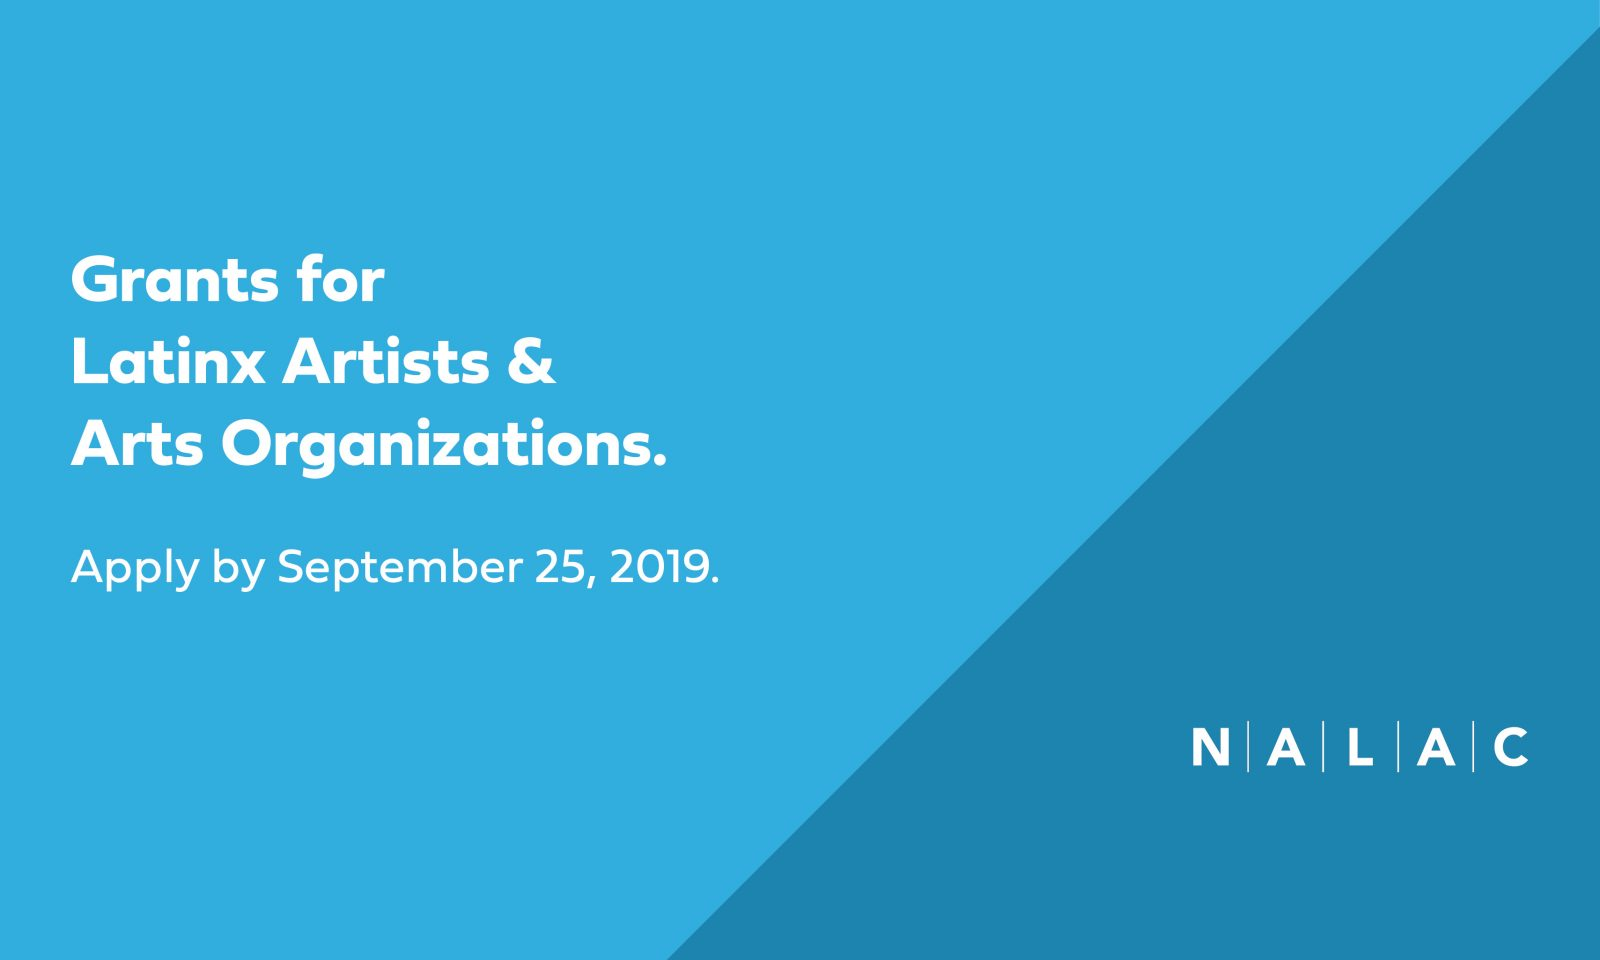 NALAC Announces $10,000 Grant Opportunities for Latinx